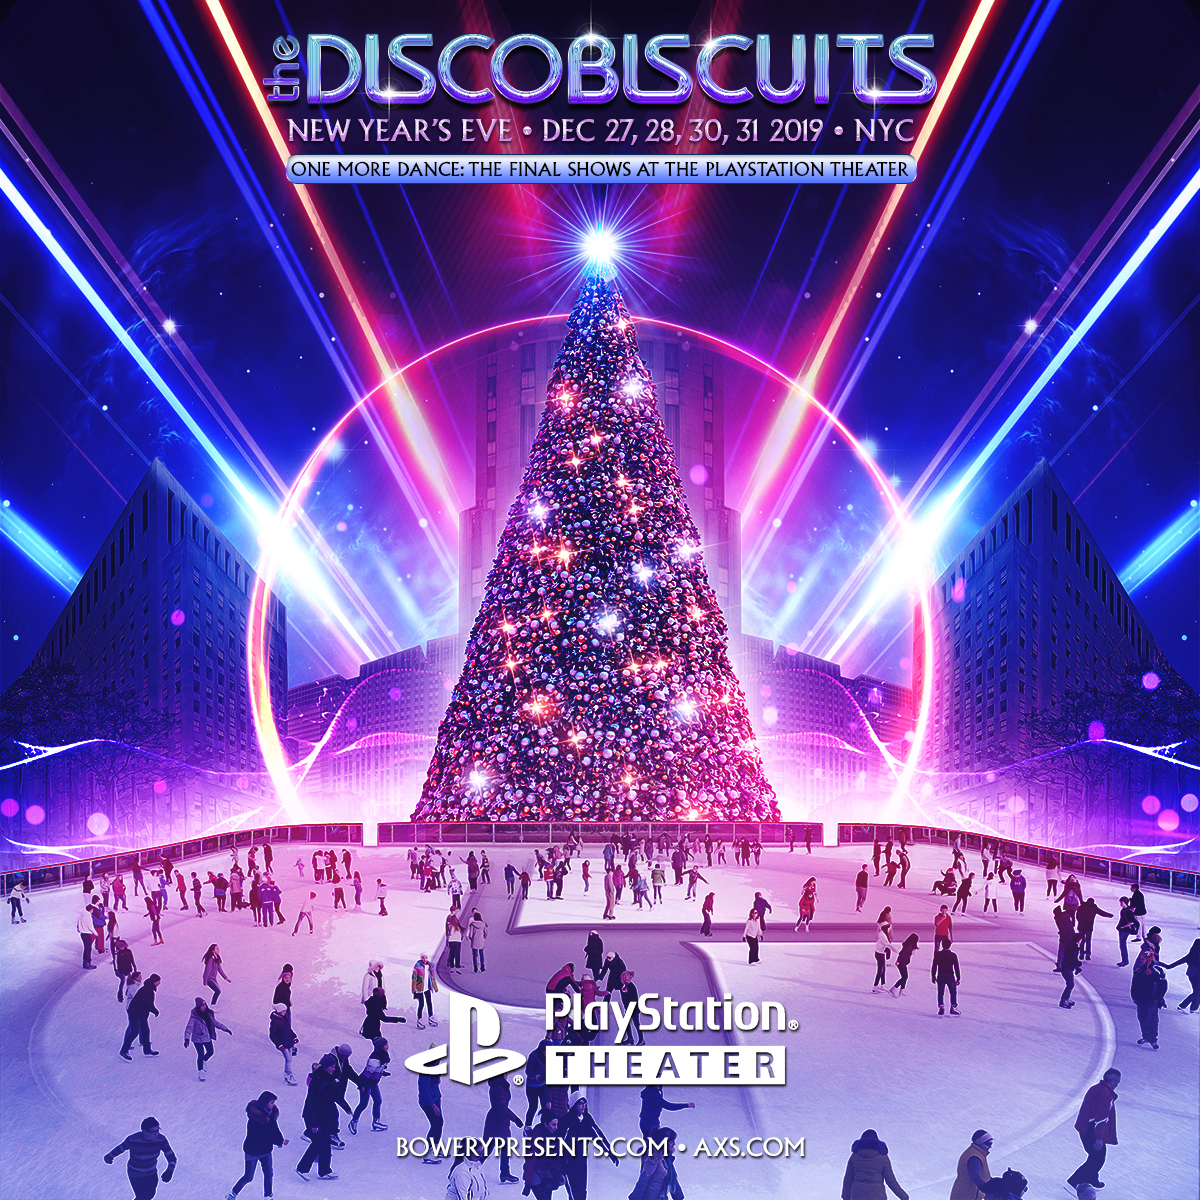 disco biscuits nye, disco biscuits playstation theater